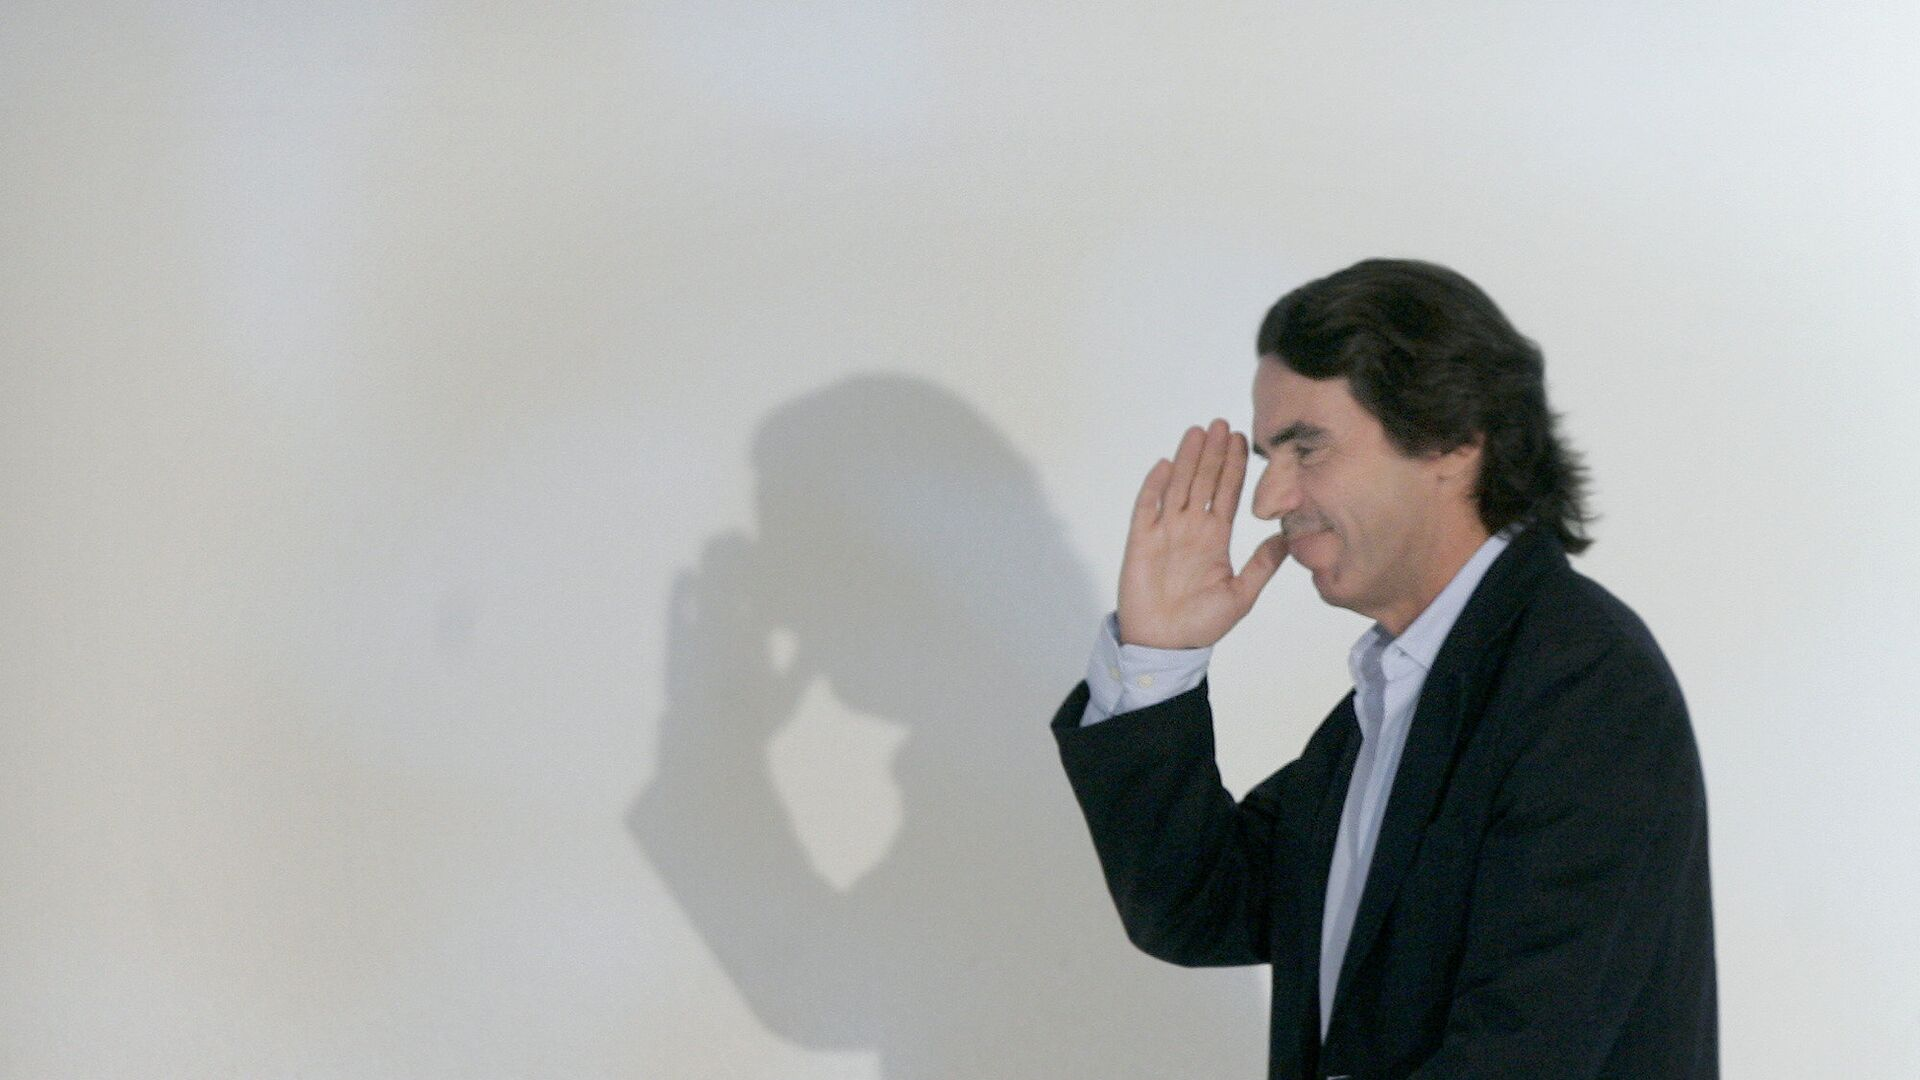 Former Spanish Prime Minister and honorary president of the Popular Party Jose Maria Aznar, salutes after his speech during the second day of the party's XVI th congress in Valencia, Spain, Saturday, June, 21, 2008 - Sputnik Mundo, 1920, 24.03.2021